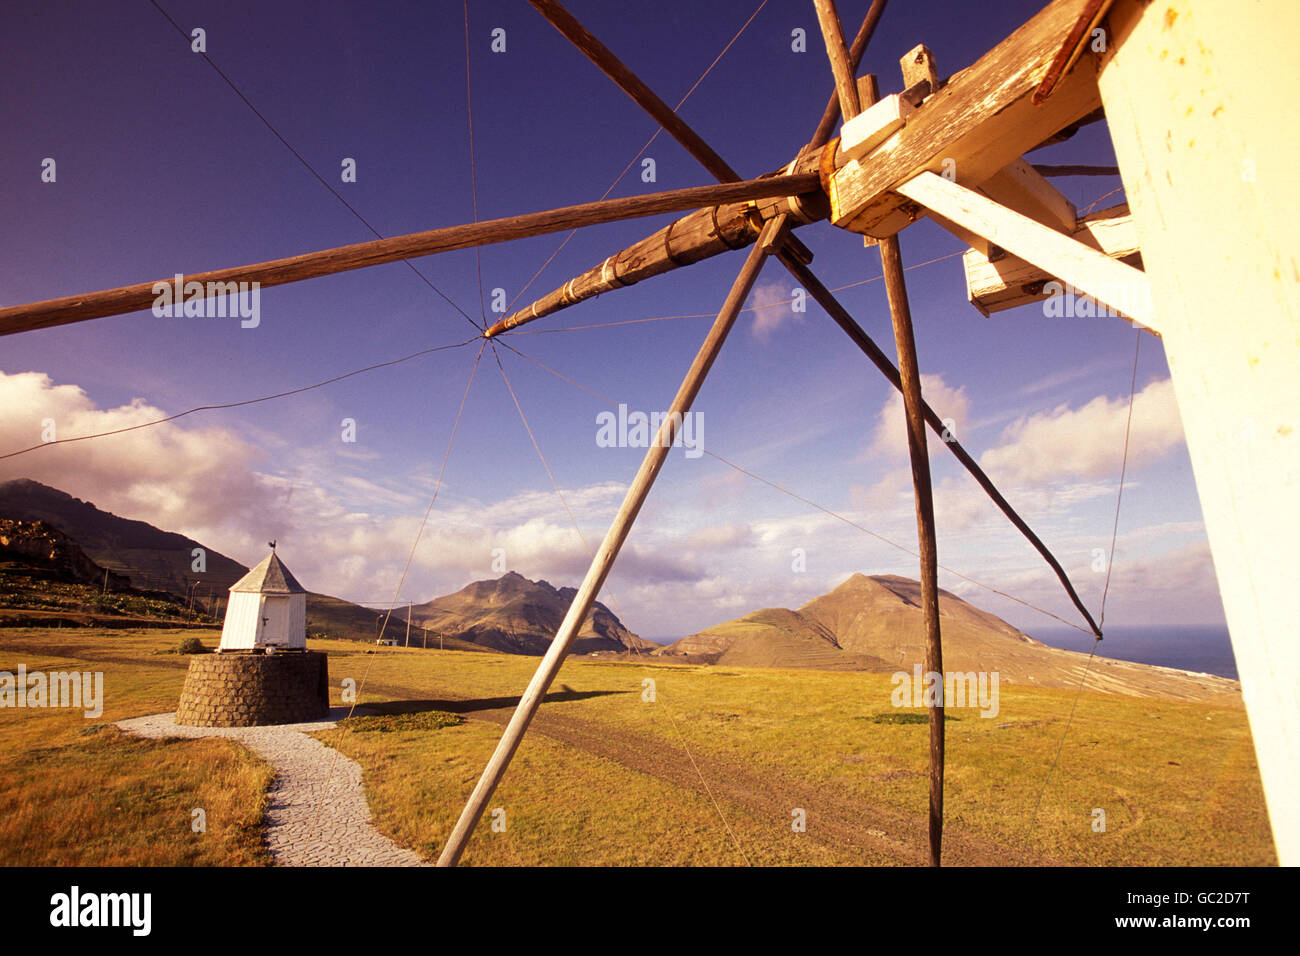 a traditional wind mill on the Island of Porto Santo ot the Madeira Islands in the Atlantic Ocean of Portugal. Stock Photo